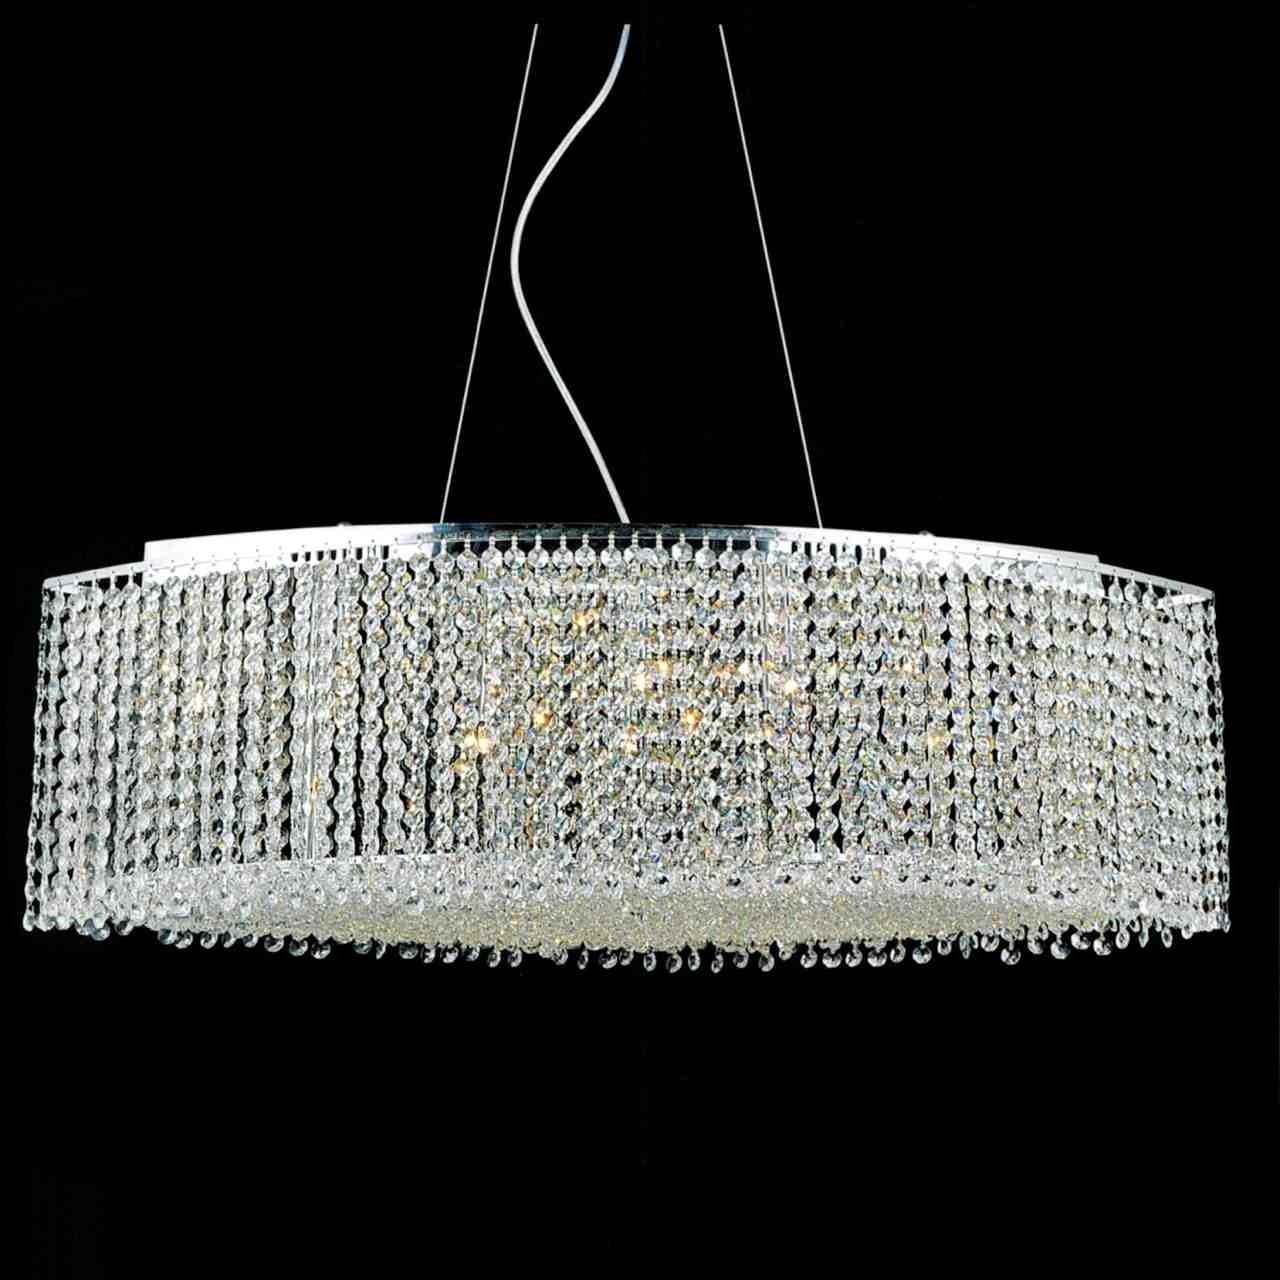 Brizzo Lighting Stores 35 Rainbow Modern Linear Crystal With Regard To Chrome And Crystal Chandeliers (View 6 of 25)